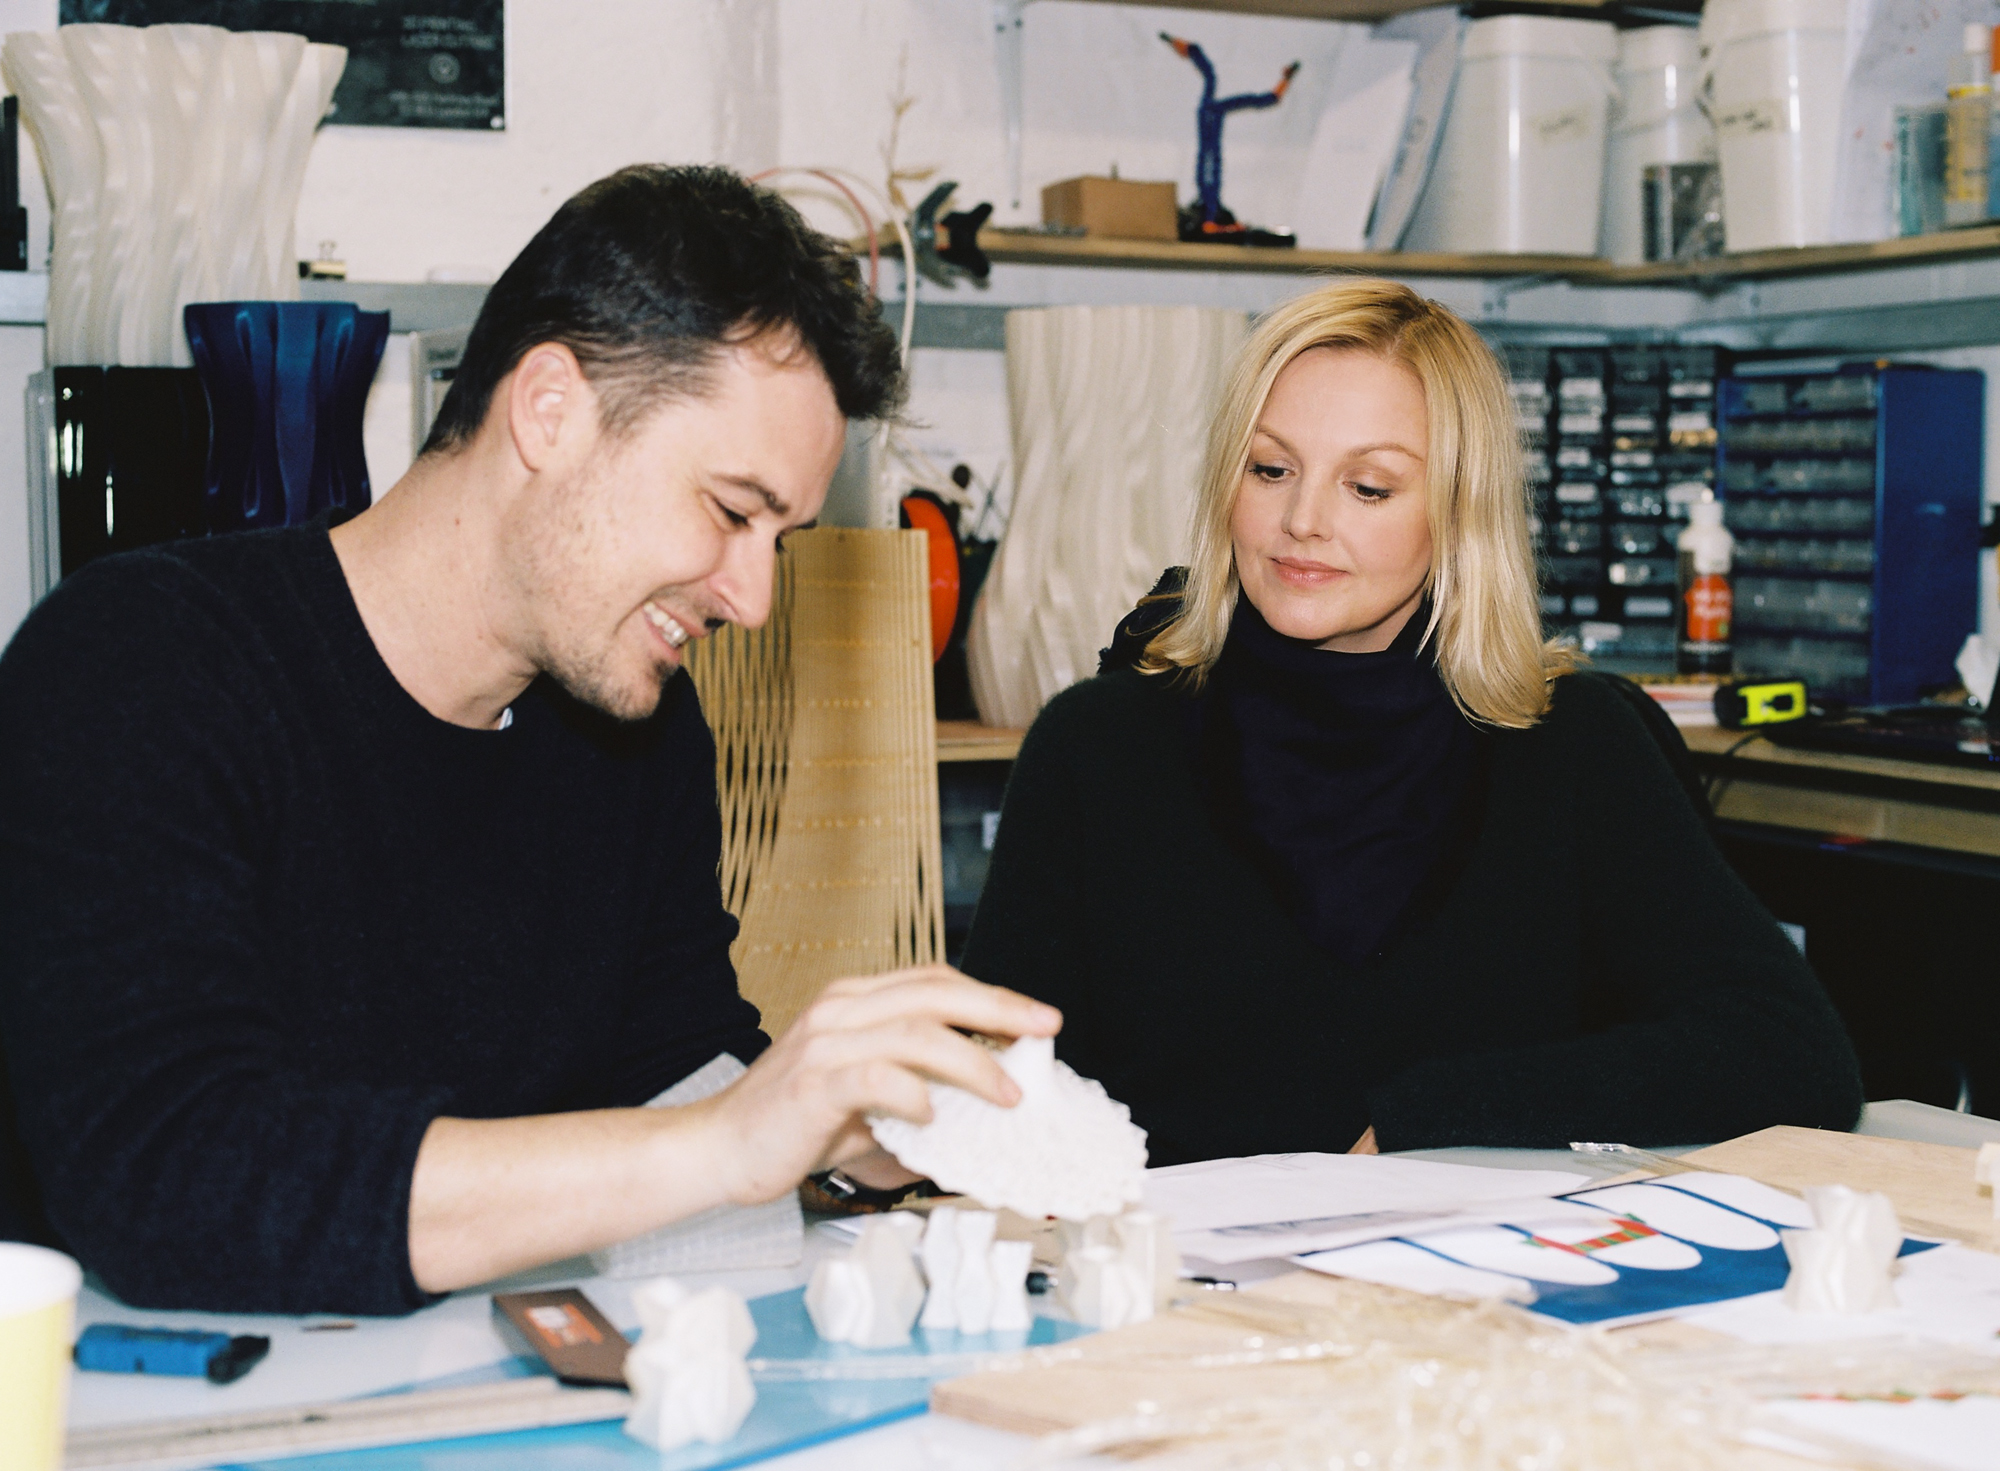 French architect Arthur Mamou-Mani and Karin Gustafsson, creative director of COS.